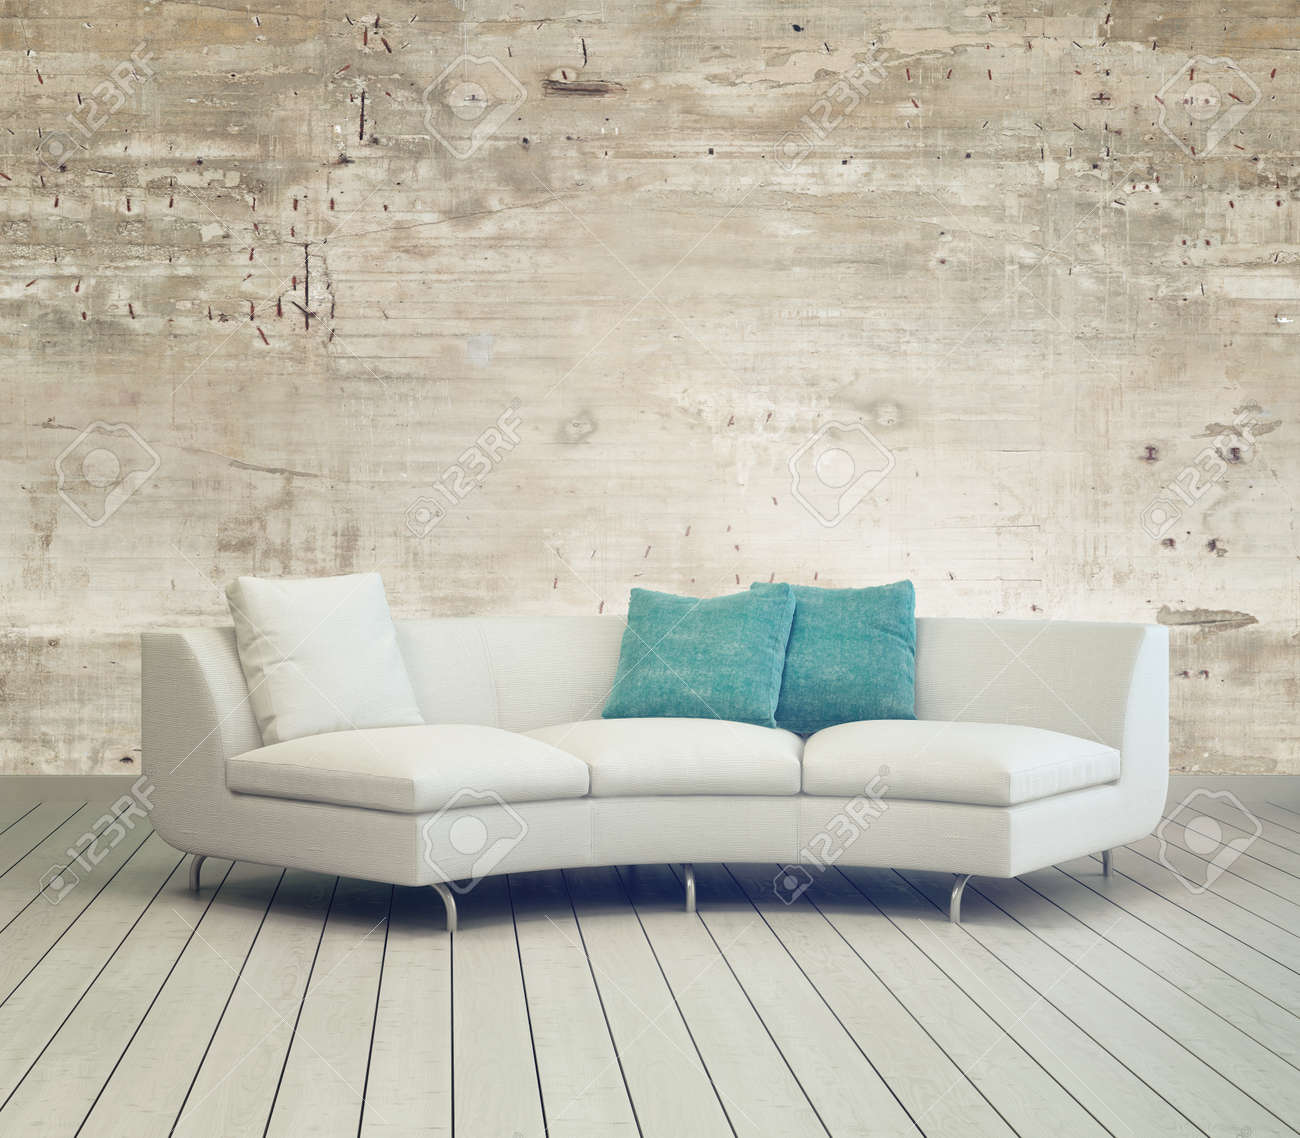 White Couch Furniture On Cozy Living Room With Unfinished Wall